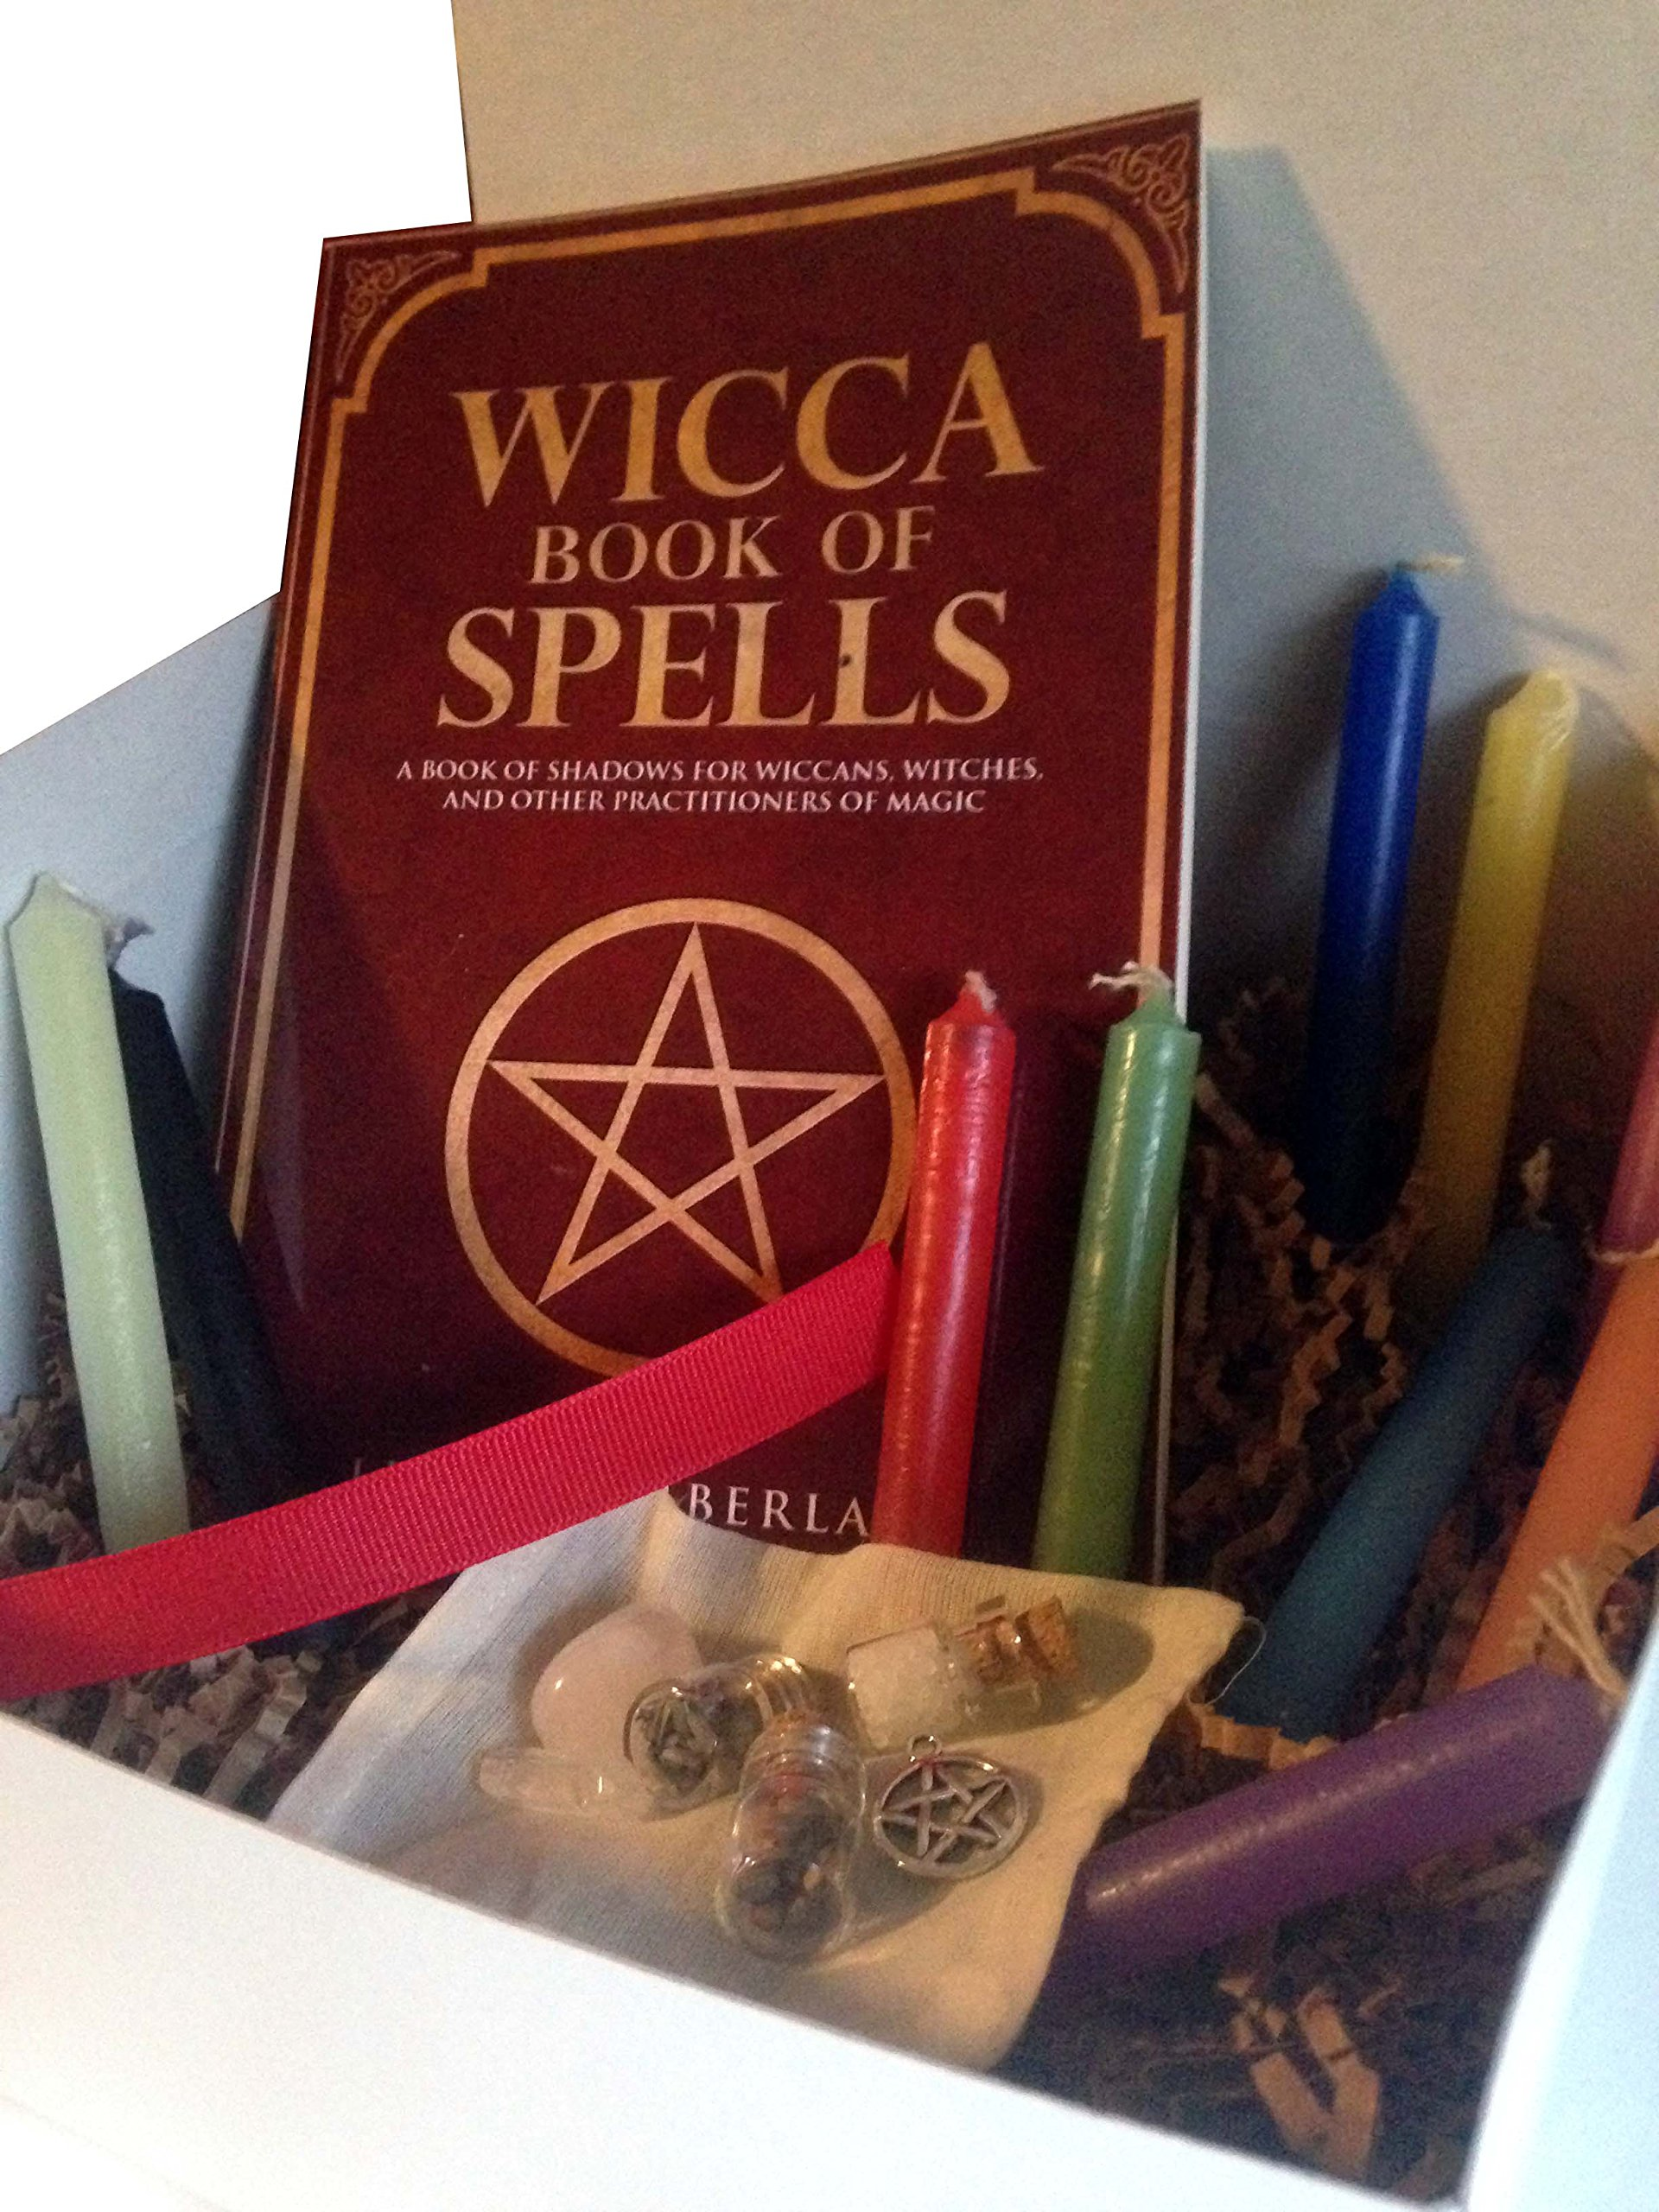 Pagan Wicca Witchcraft Charm Supplies Starter Gift Box Kit for Beginners by Pine Pentagram